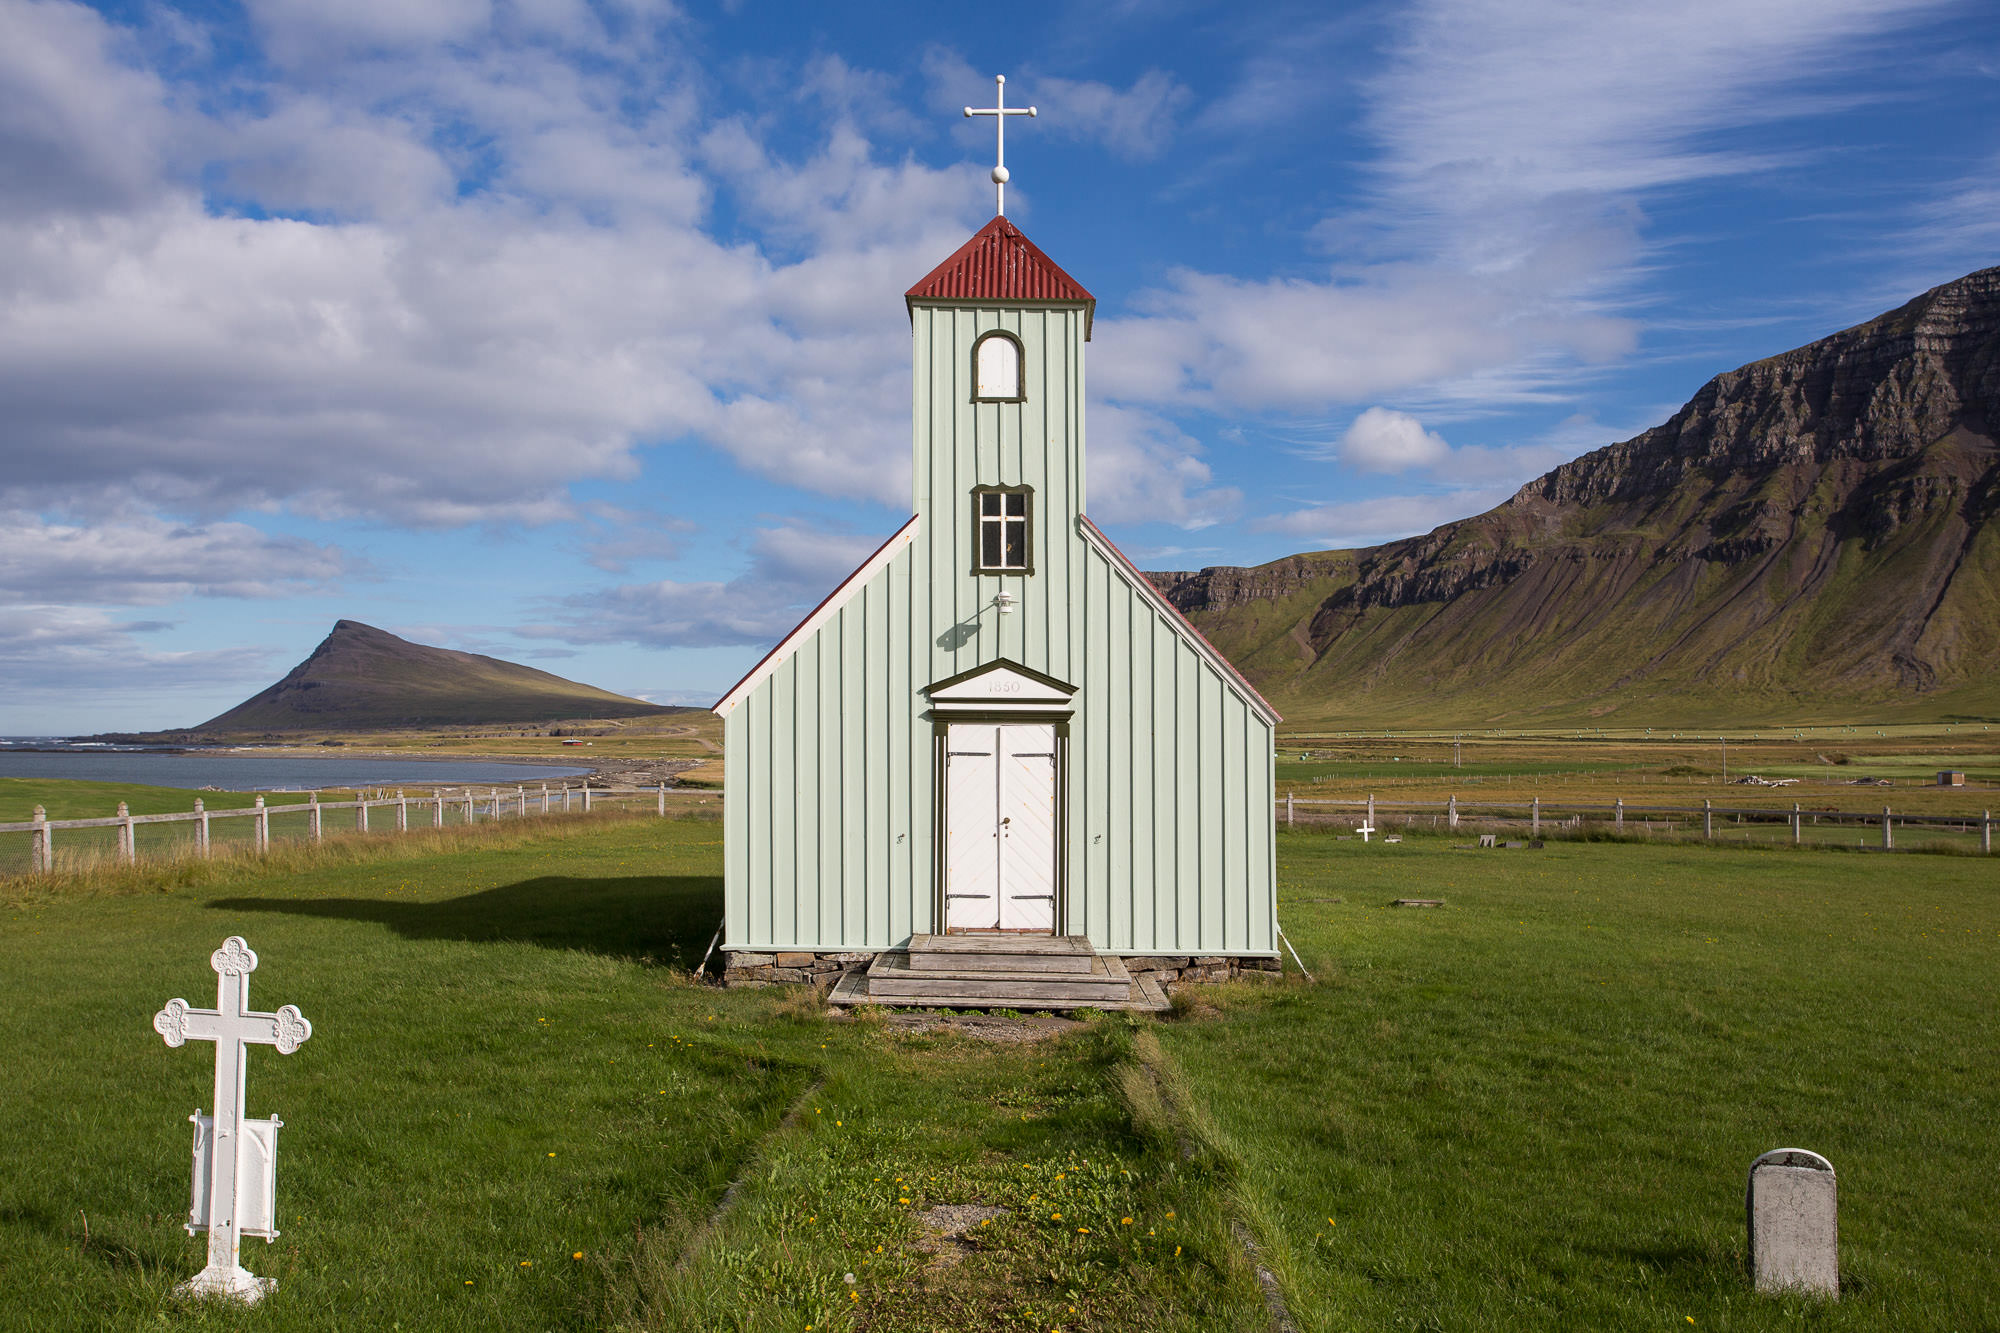 mike-kelley-iceland-architecture-11.jpg